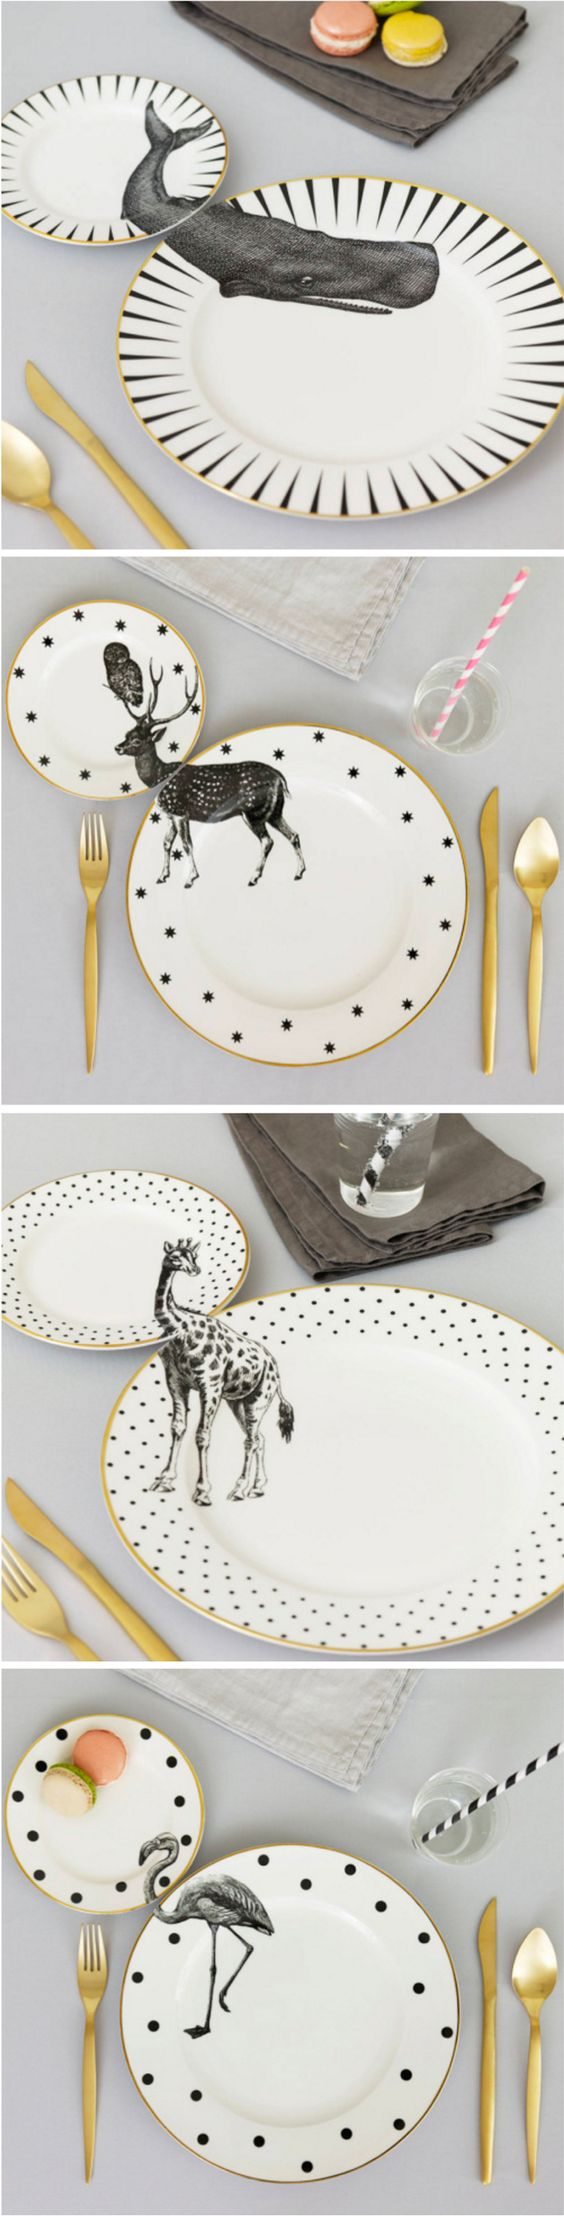 New Lease On Life yvonne ellen gives forgotten vintage housewares a new lease on